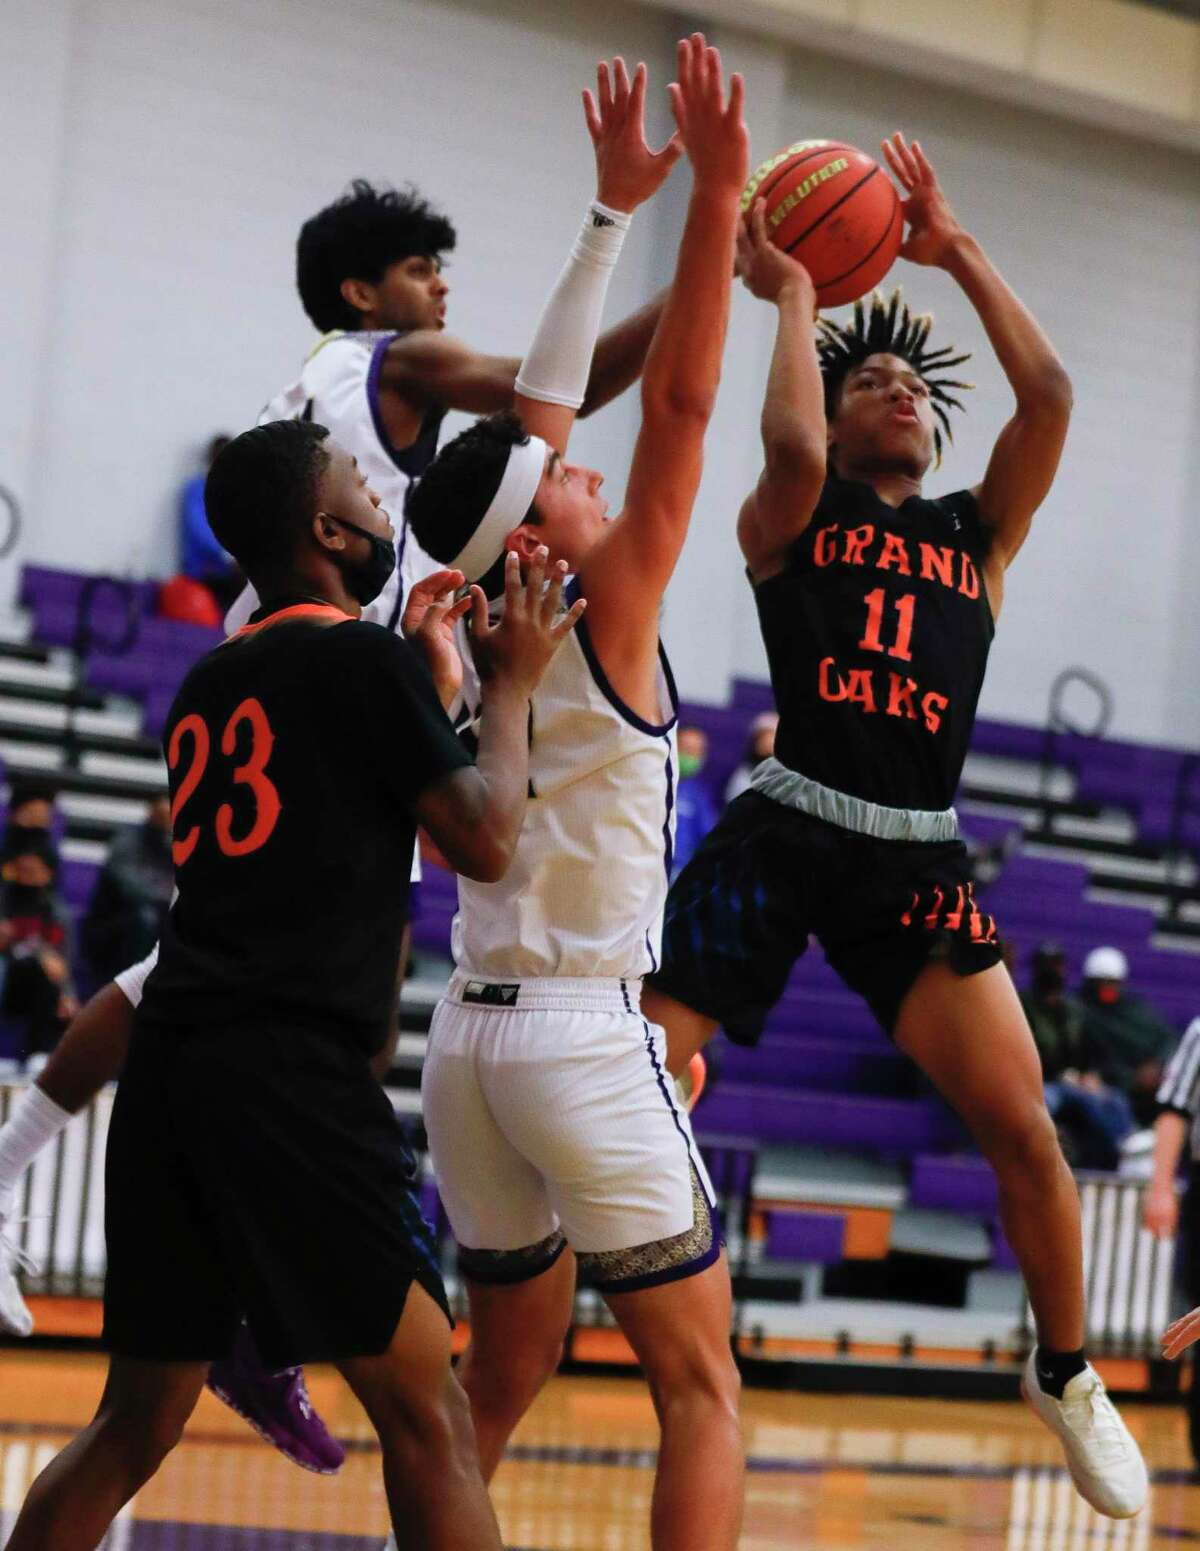 Grand Oaks guard Jordan Reece (11) is fouled as he shoots during the second quarter of a non-district high school basketball game at Montgomery High School, Saturday, Dec. 5, 2020, in Montgomery.